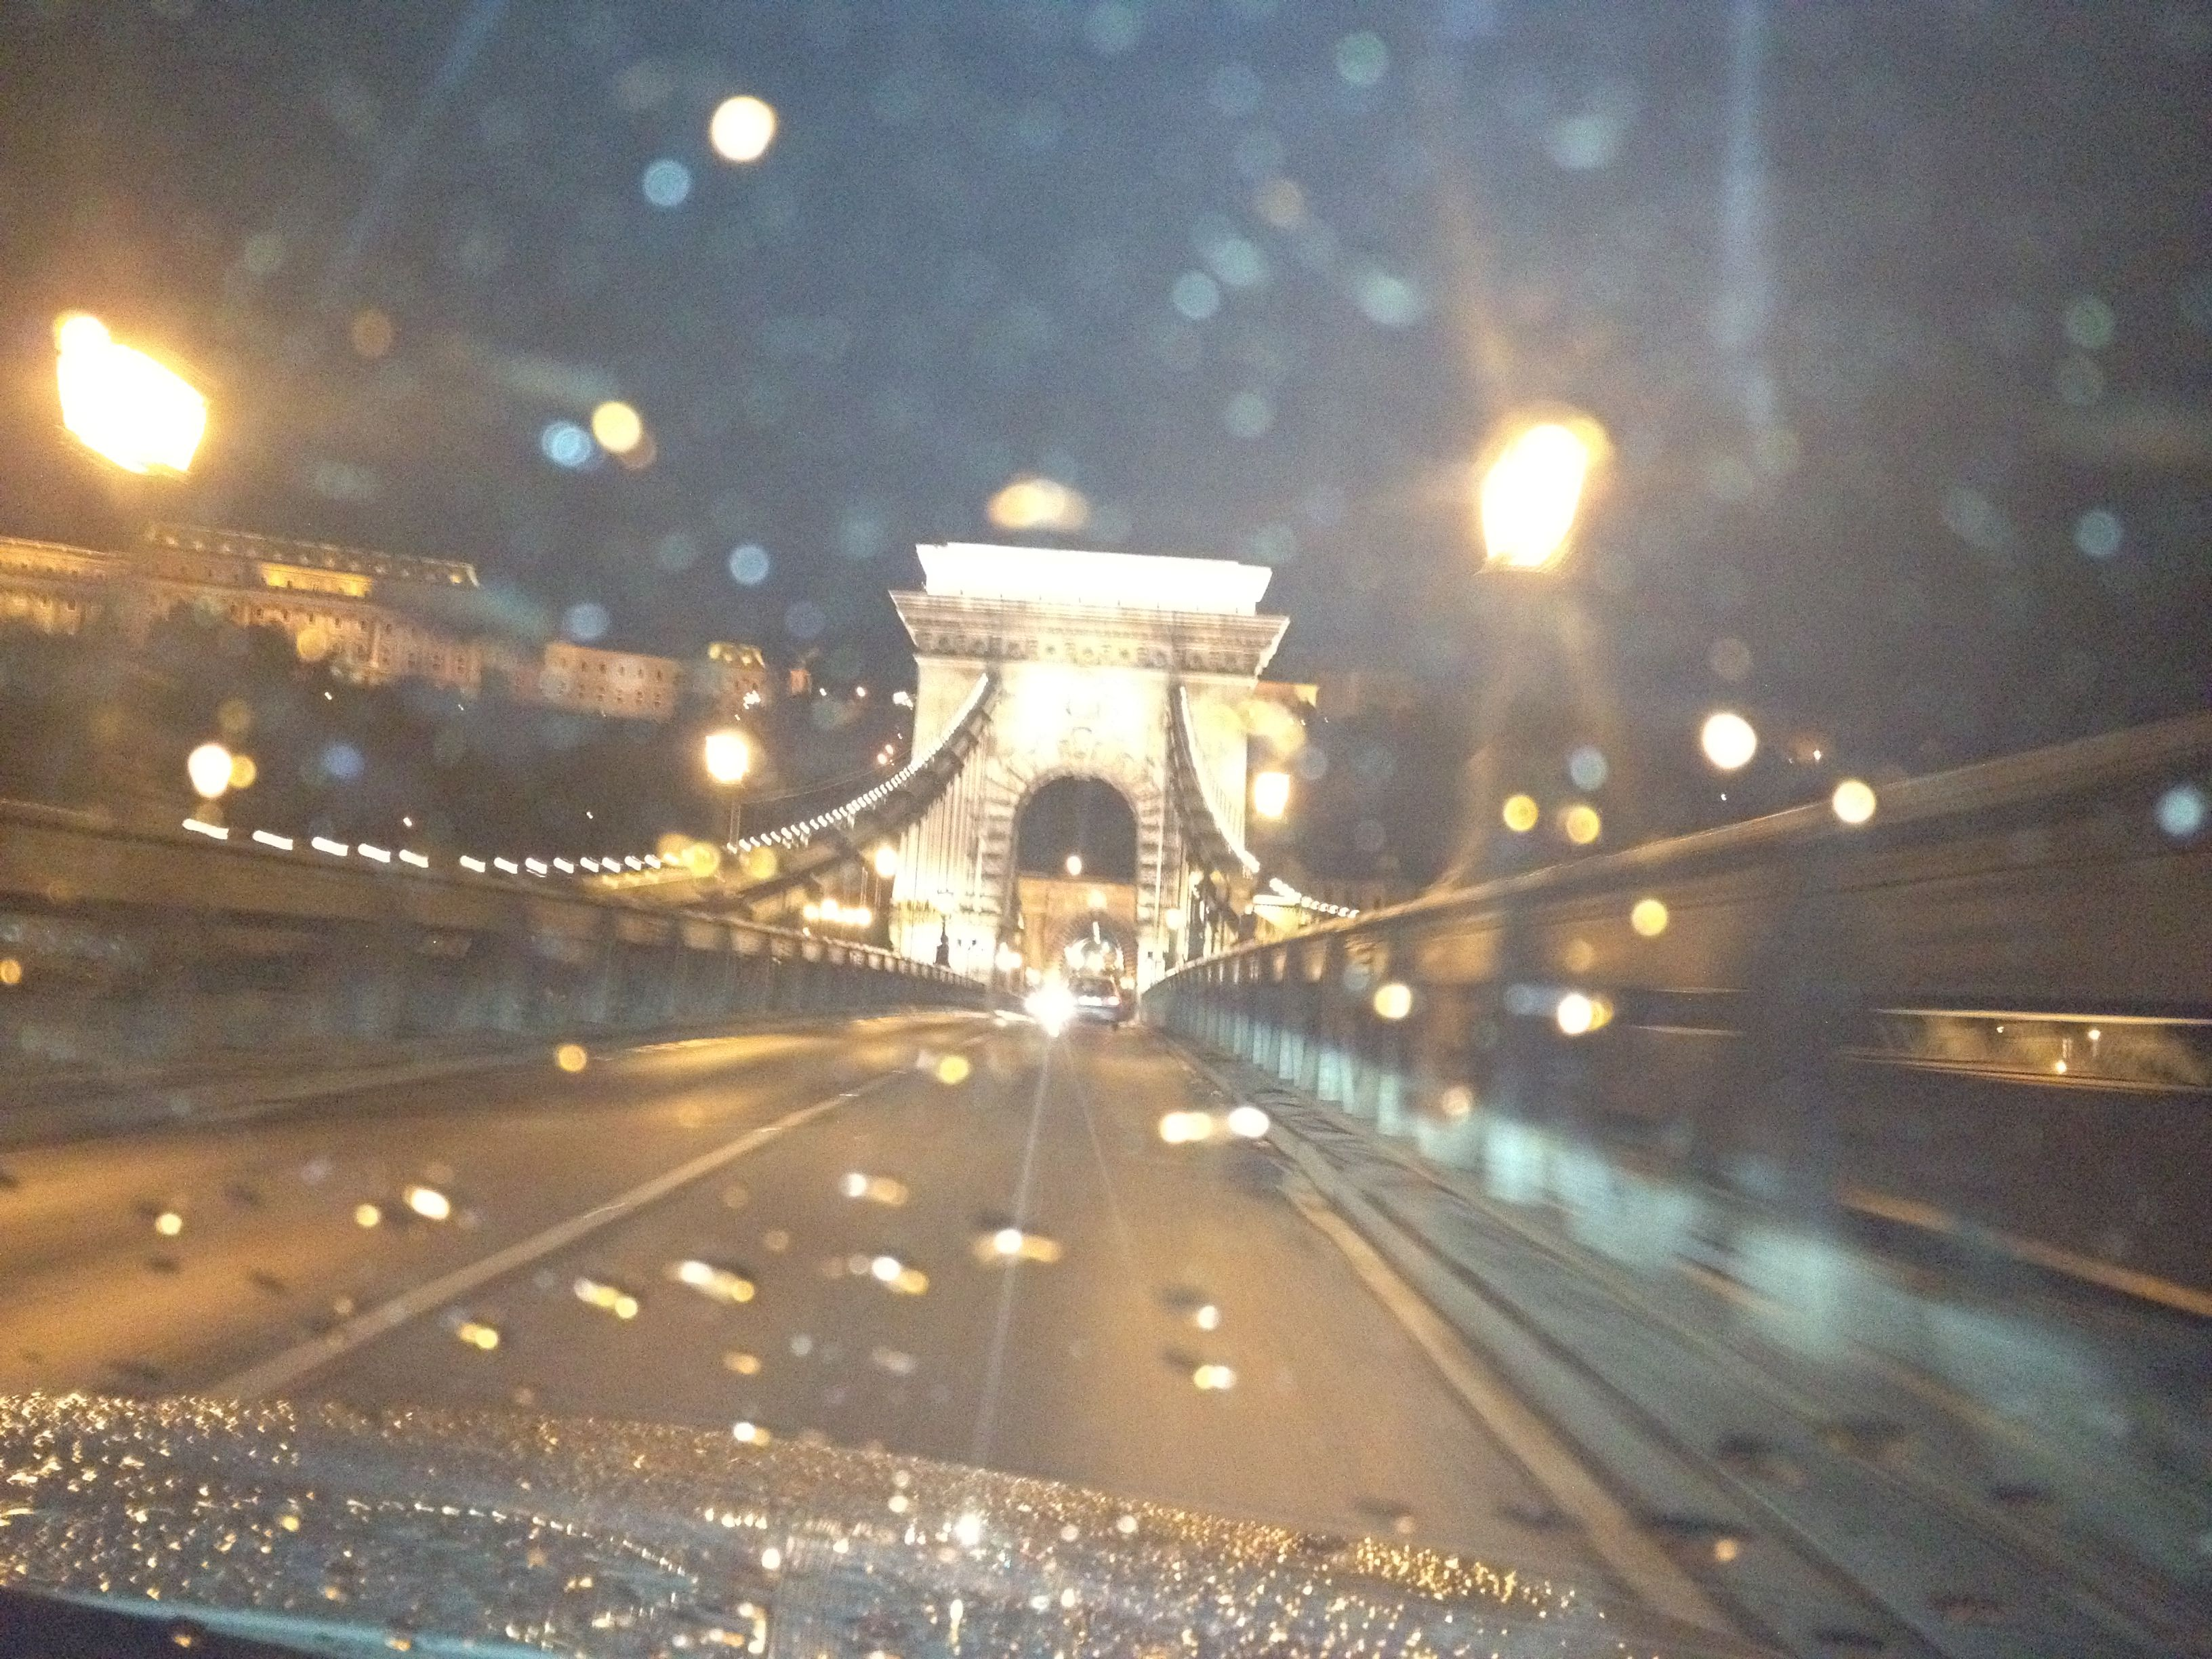 Budapest in the rain.